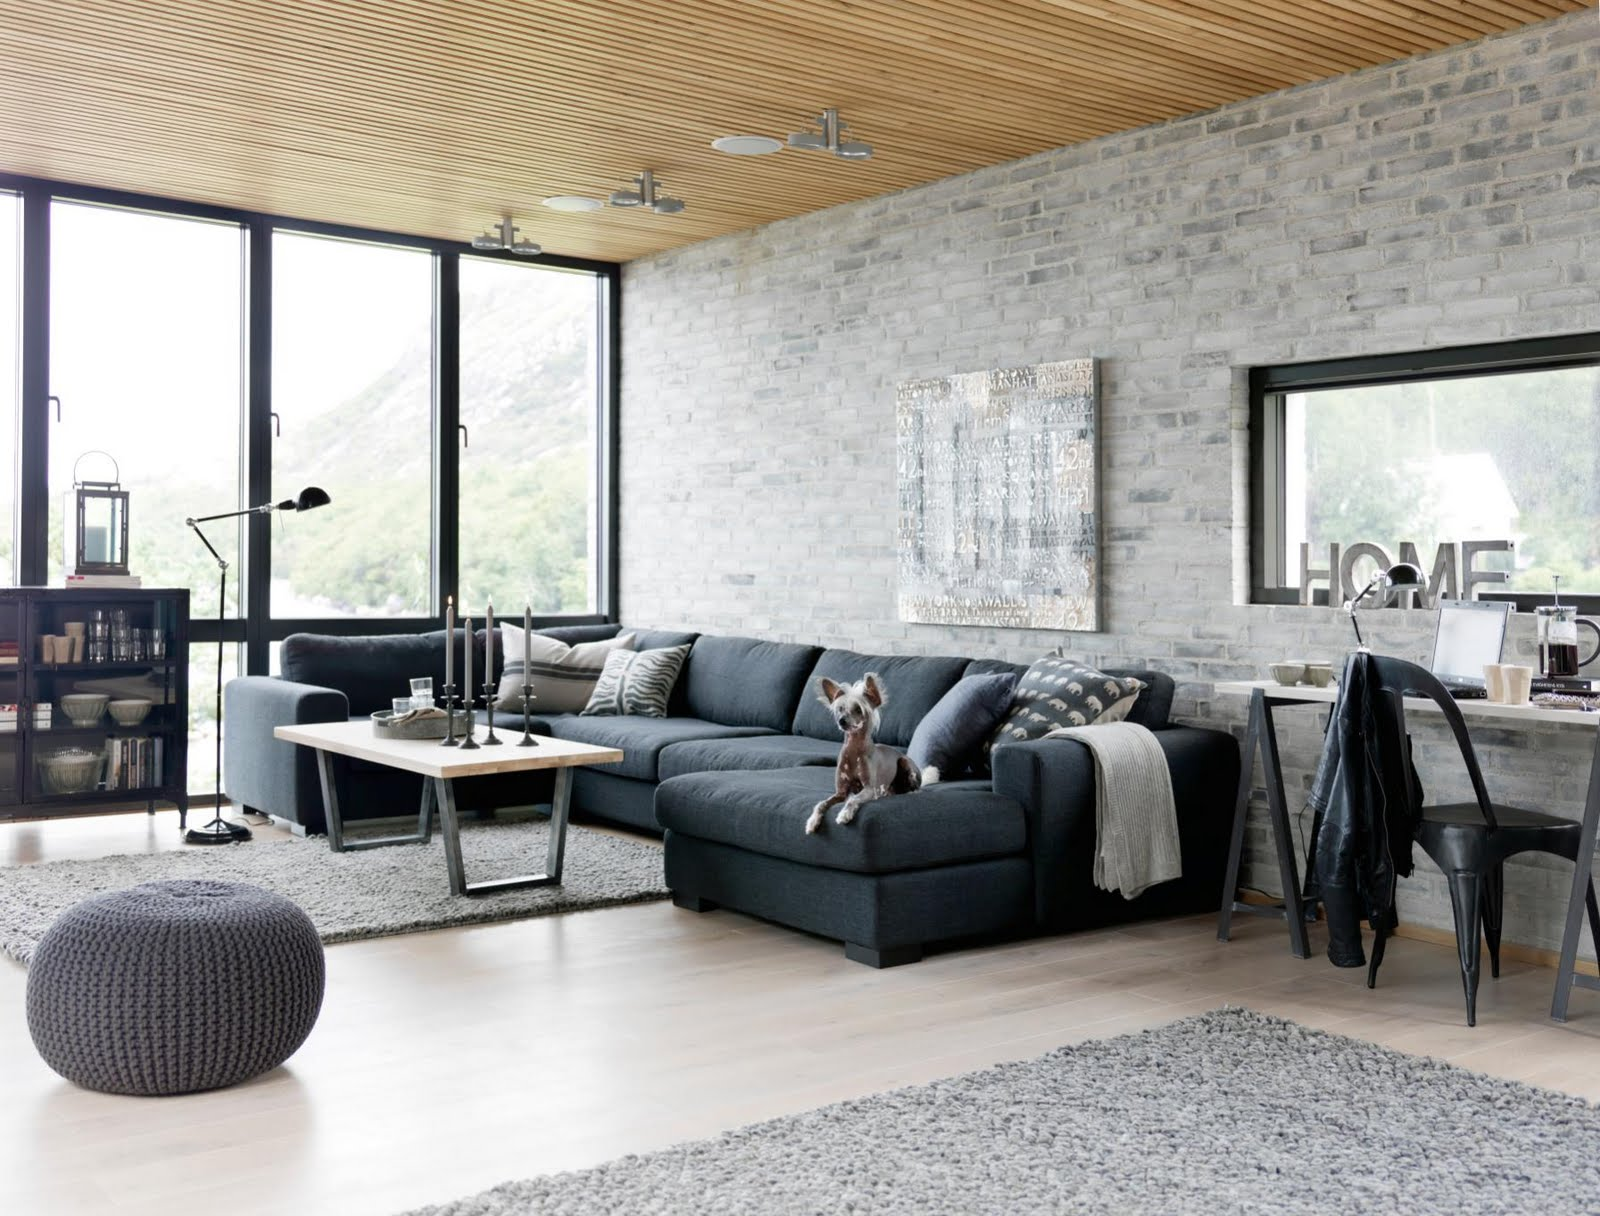 Exquisite Industrial Living Room